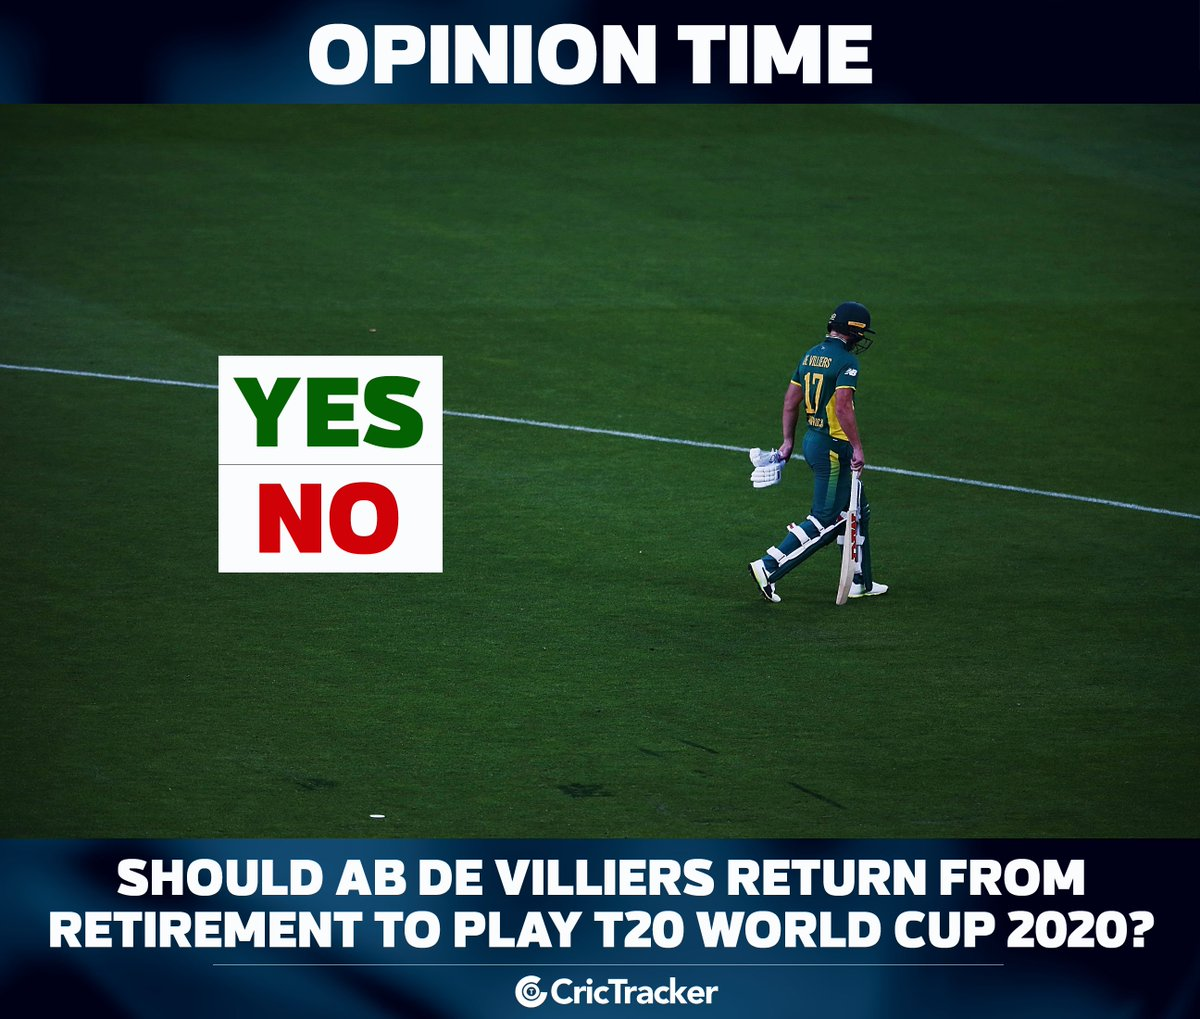 Voice out your opinions. #cricket #abdevilliers<br>http://pic.twitter.com/QDlKObpiAH